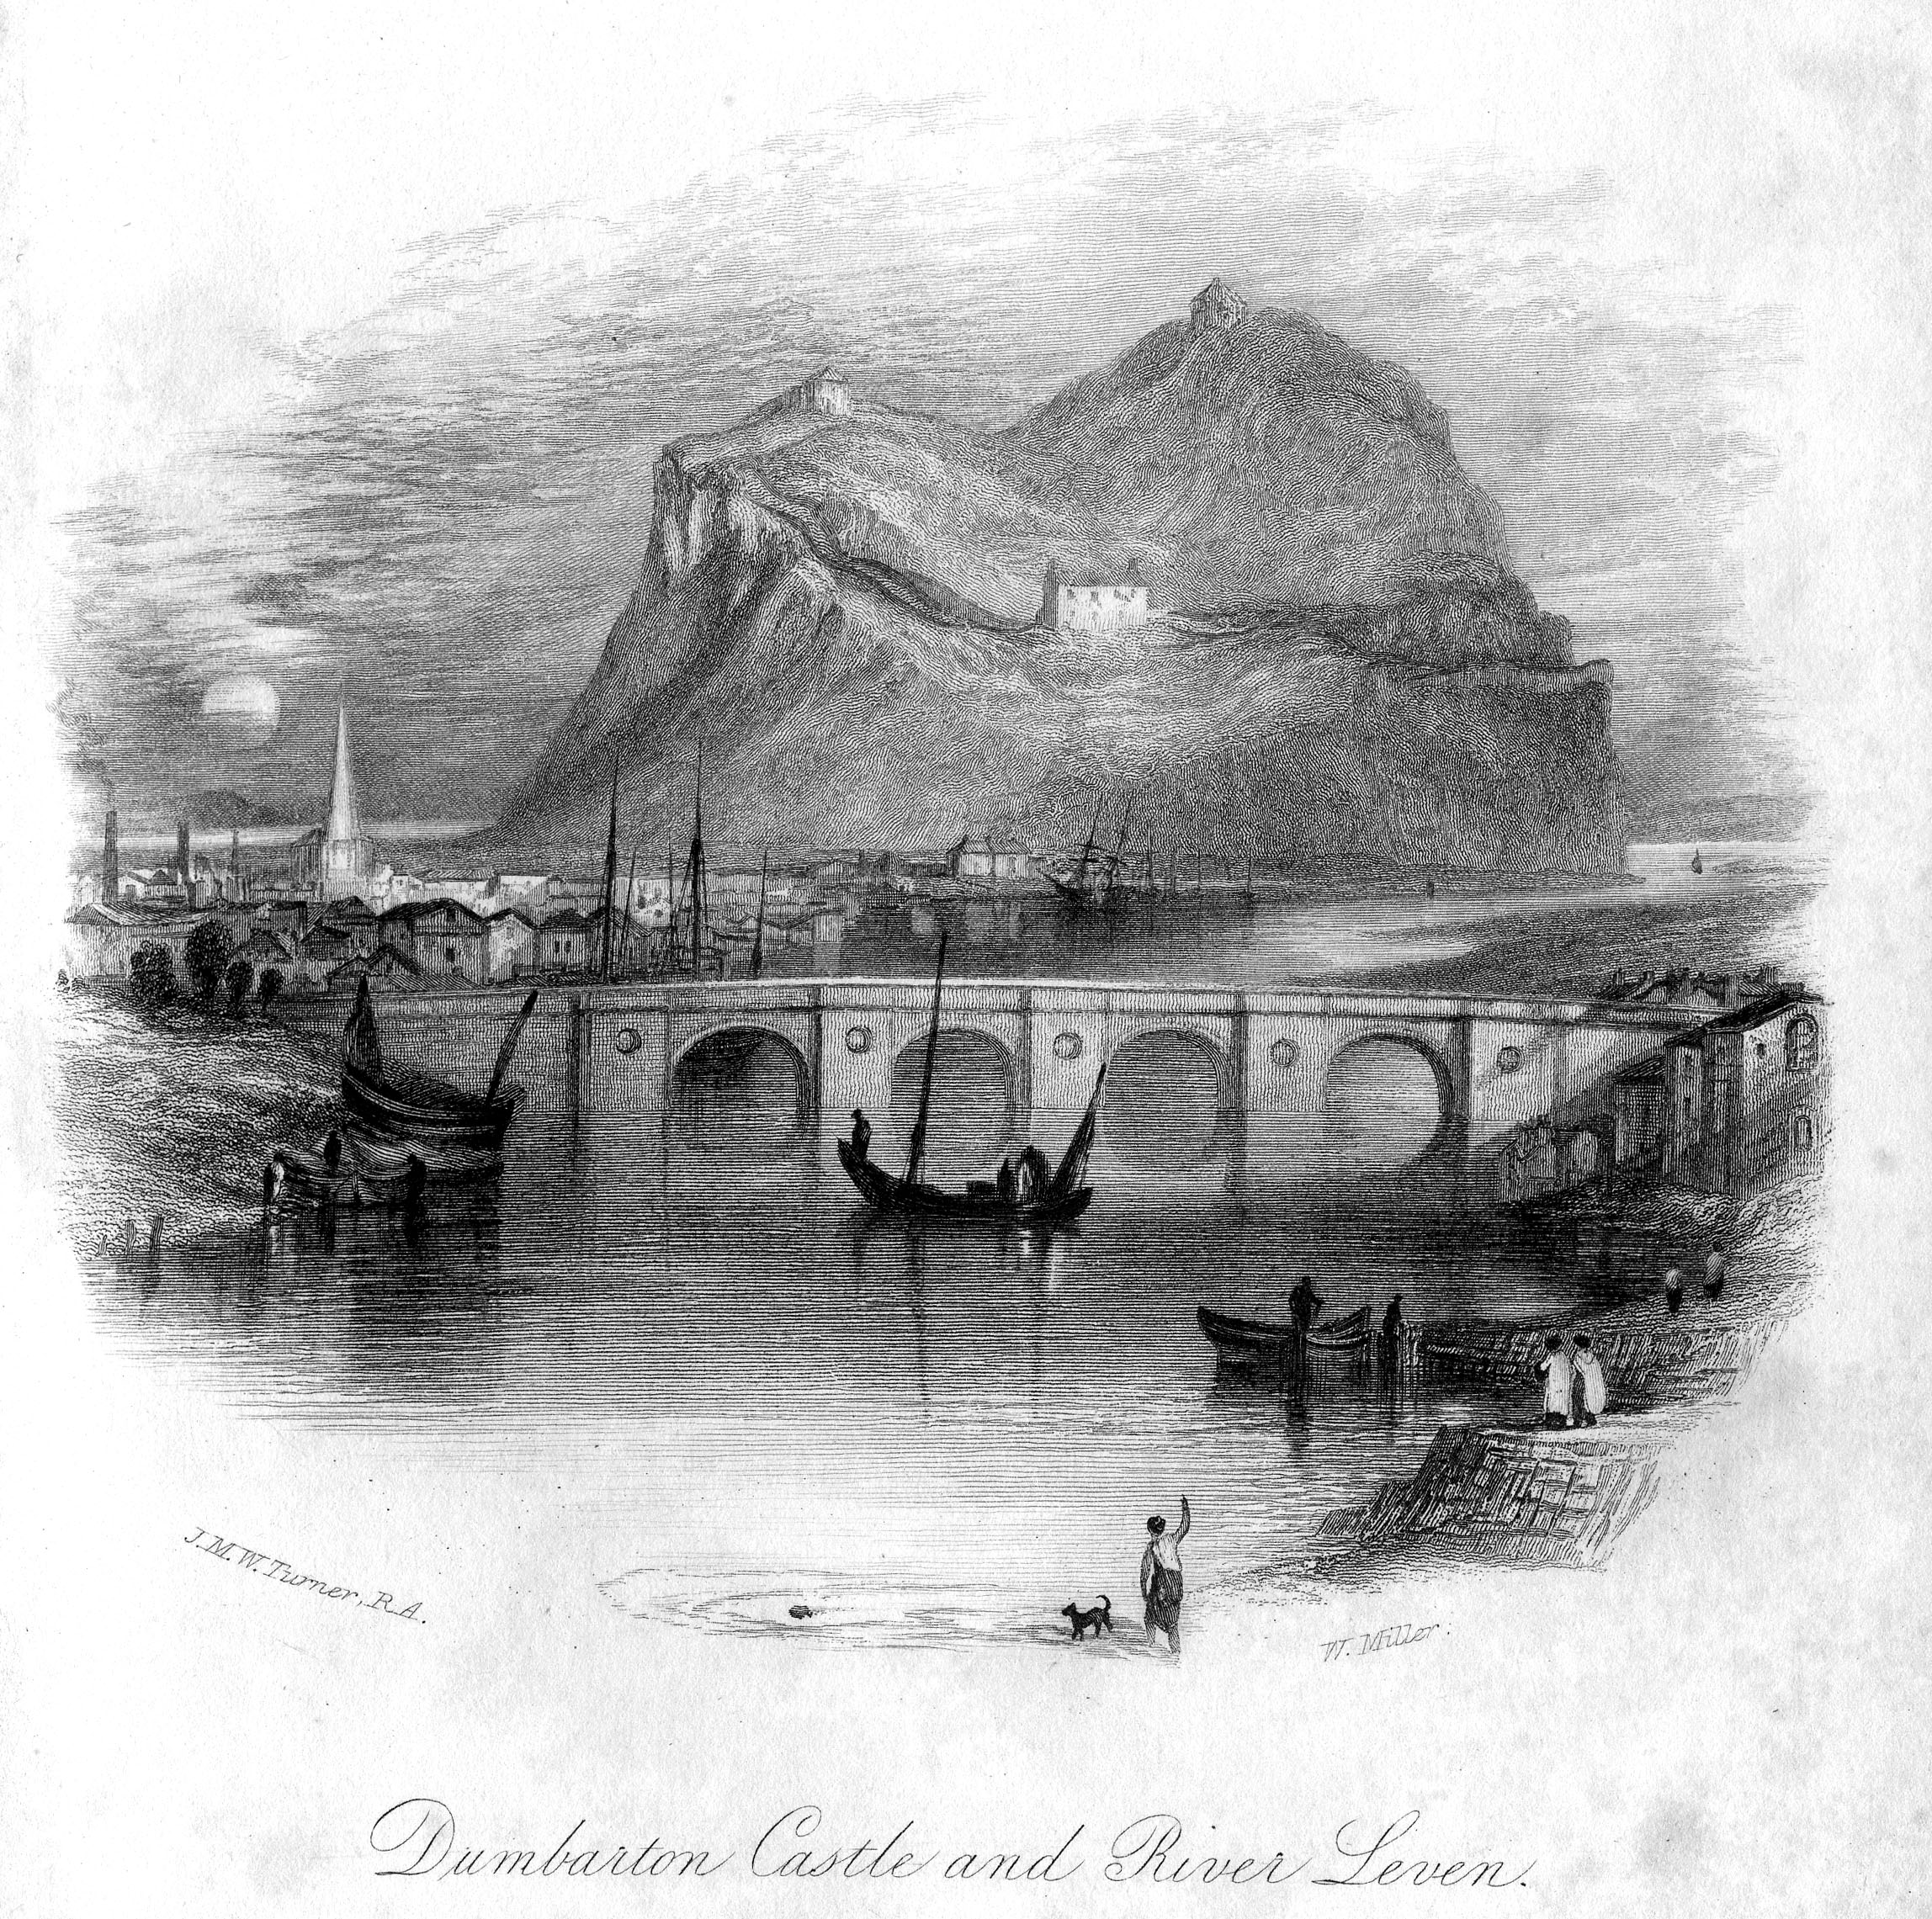 An engraving of Dumbarton Castle by William Miller.